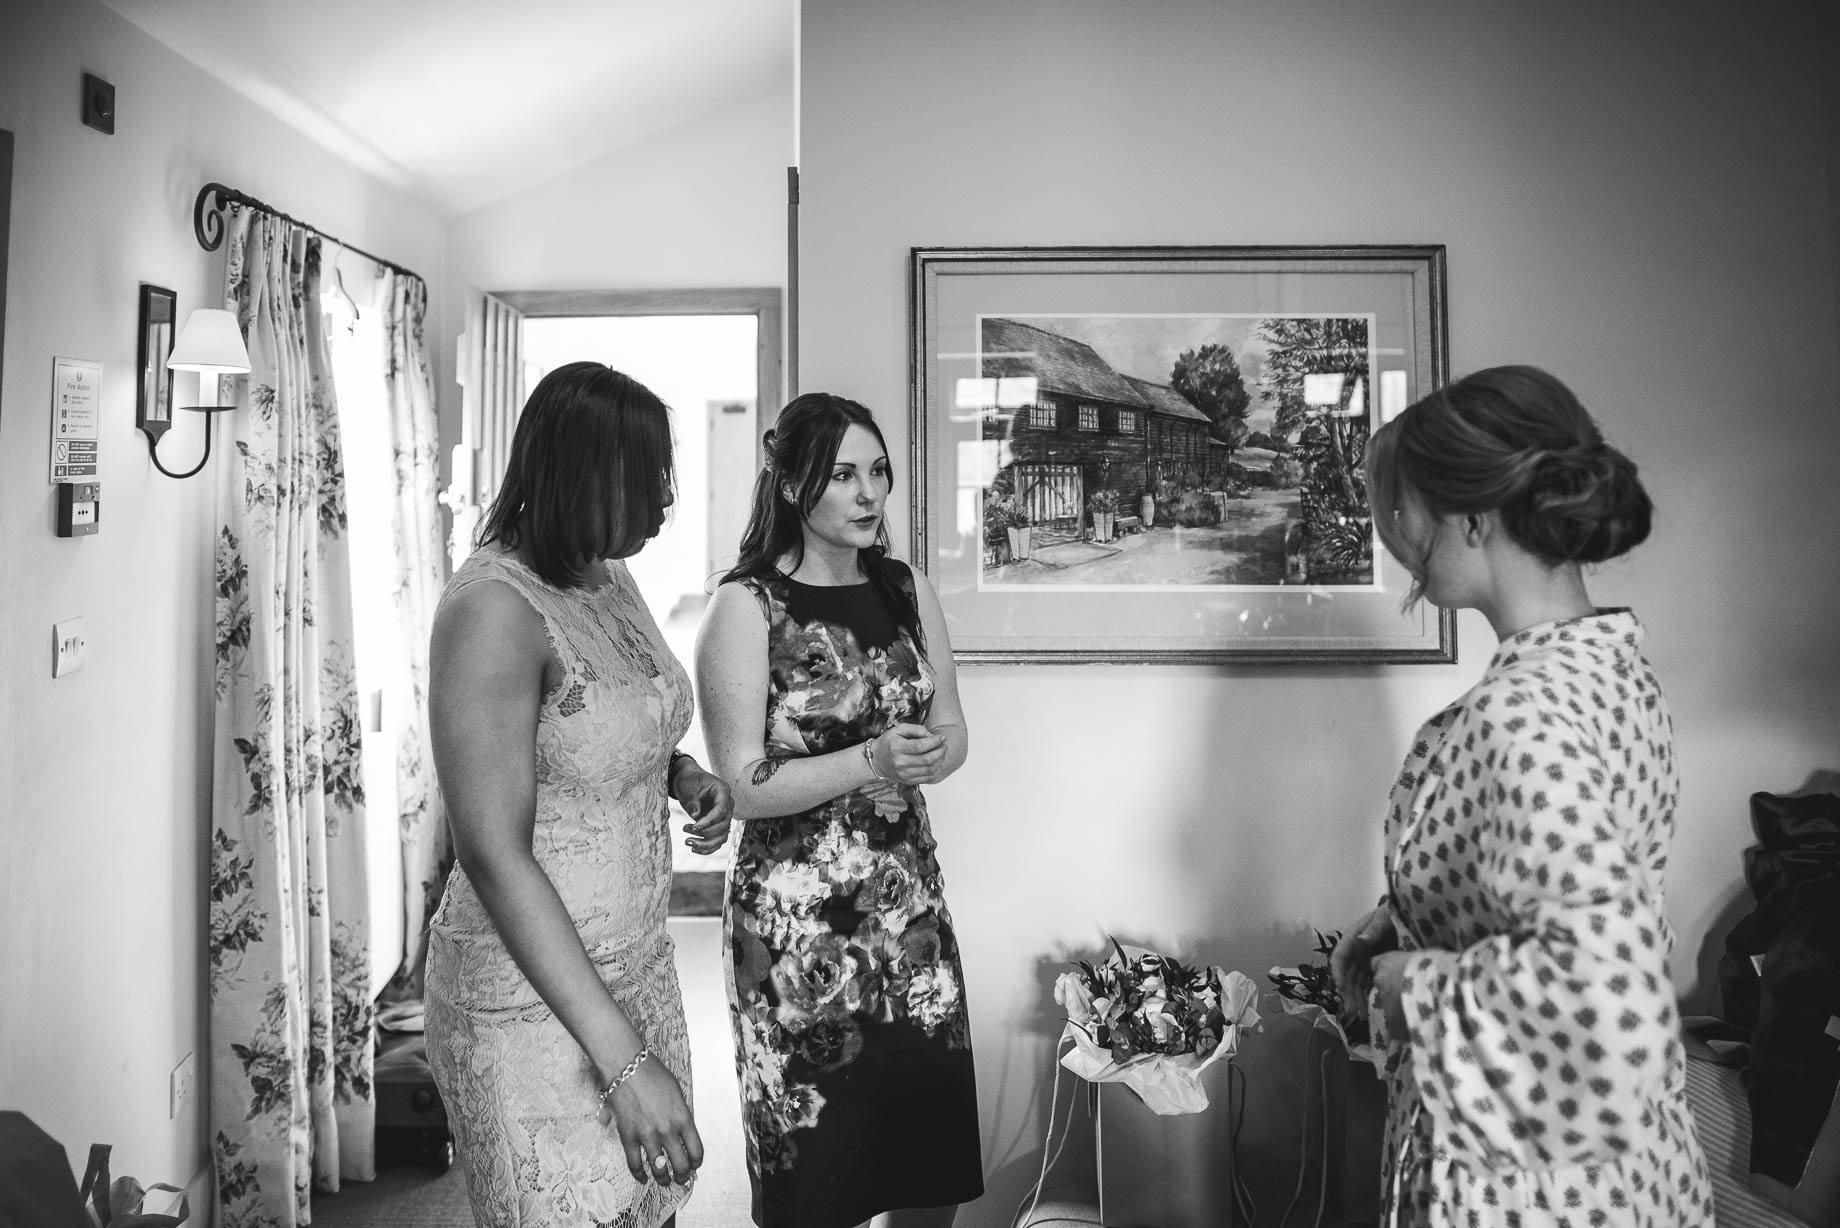 Surrey Wedding Photography by Guy Collier - Becca and James (13 of 145)